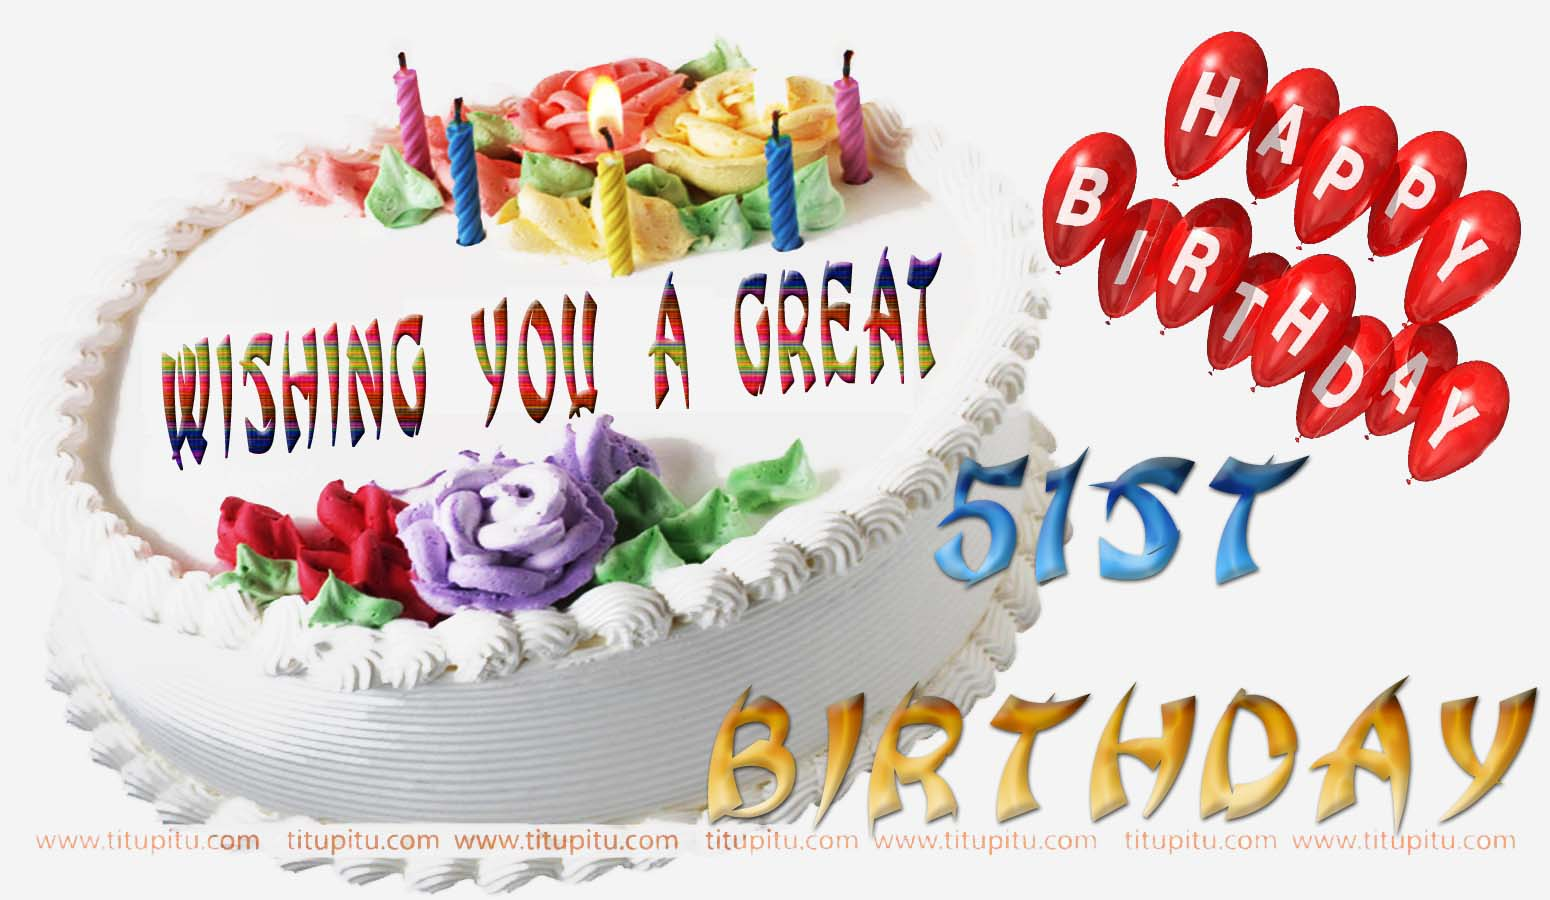 51st Birthday Wishes Message And Wallpaper For Everyone